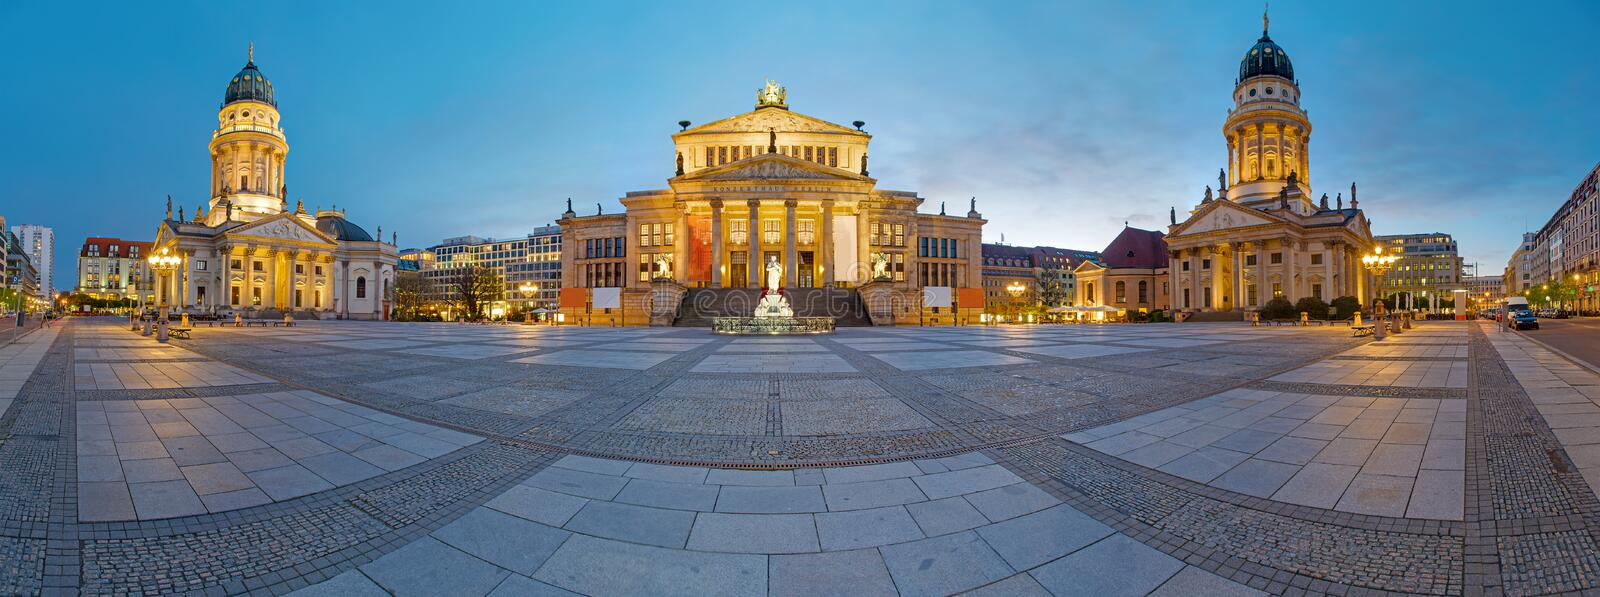 Panorama of the Gendarmenmarkt in Berlin stock photo